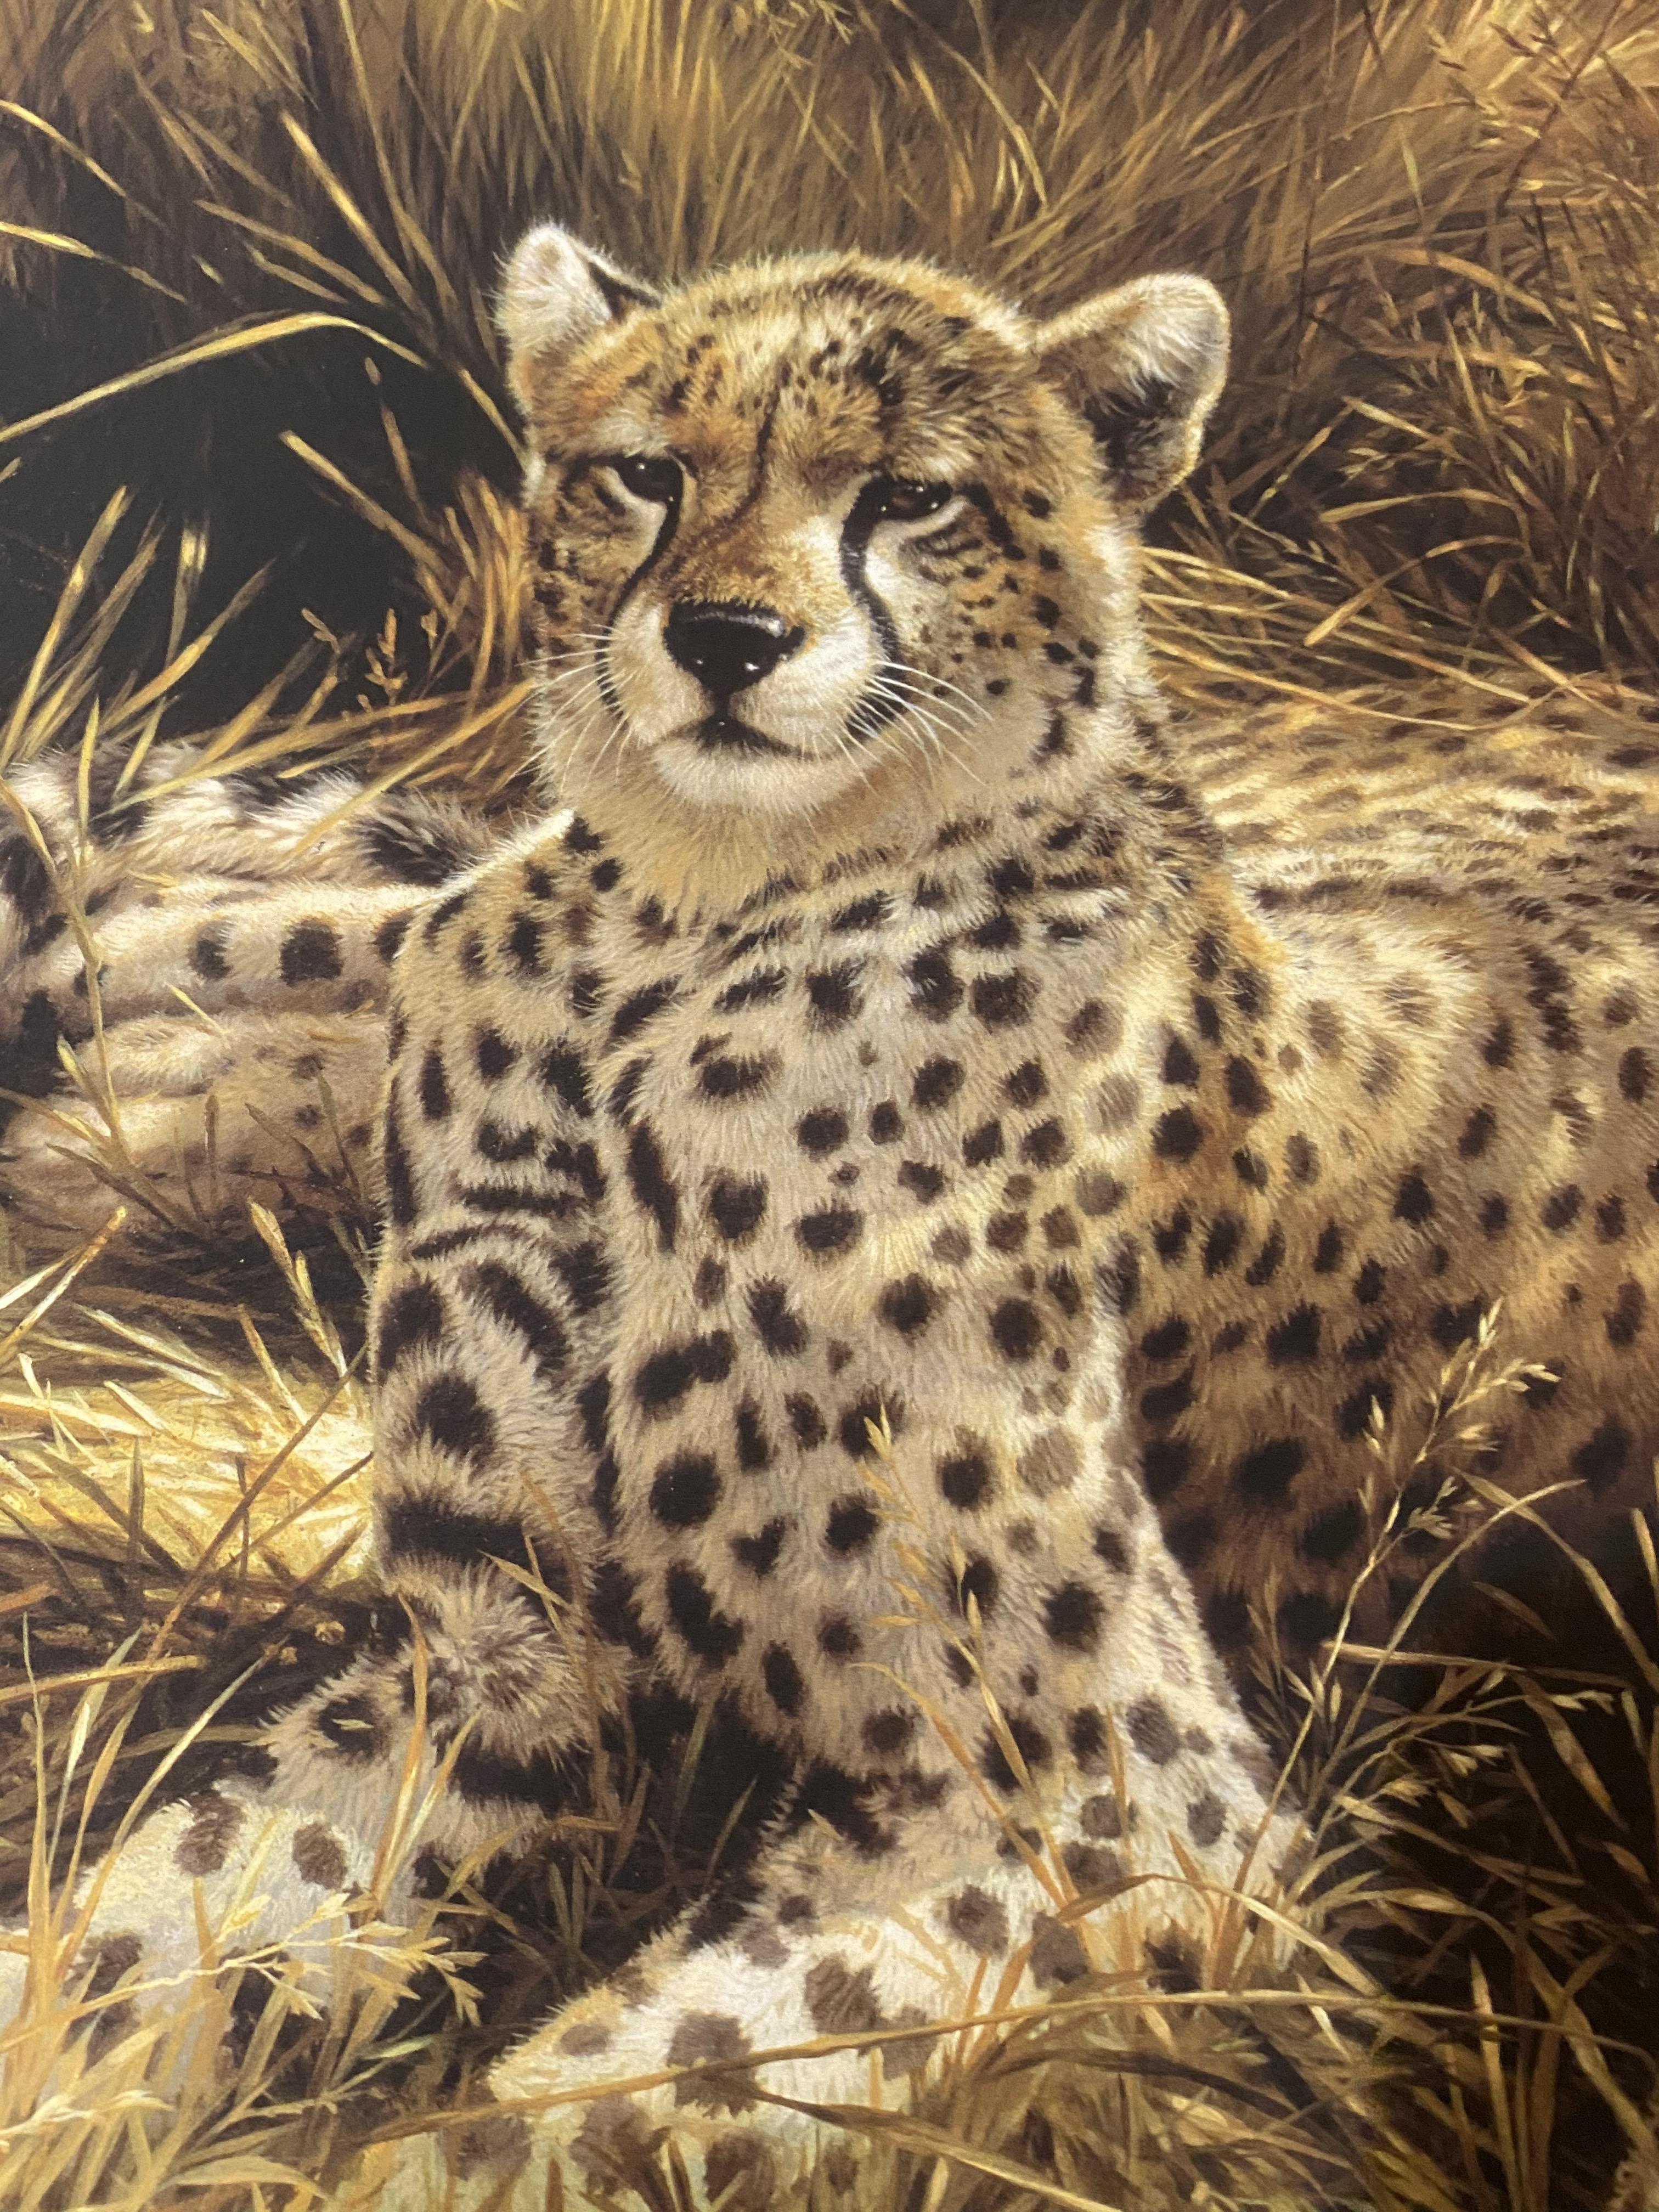 Michael Jackson Signed Limited Edition Print 'Cheetahs' With C.O.A. - Image 5 of 7